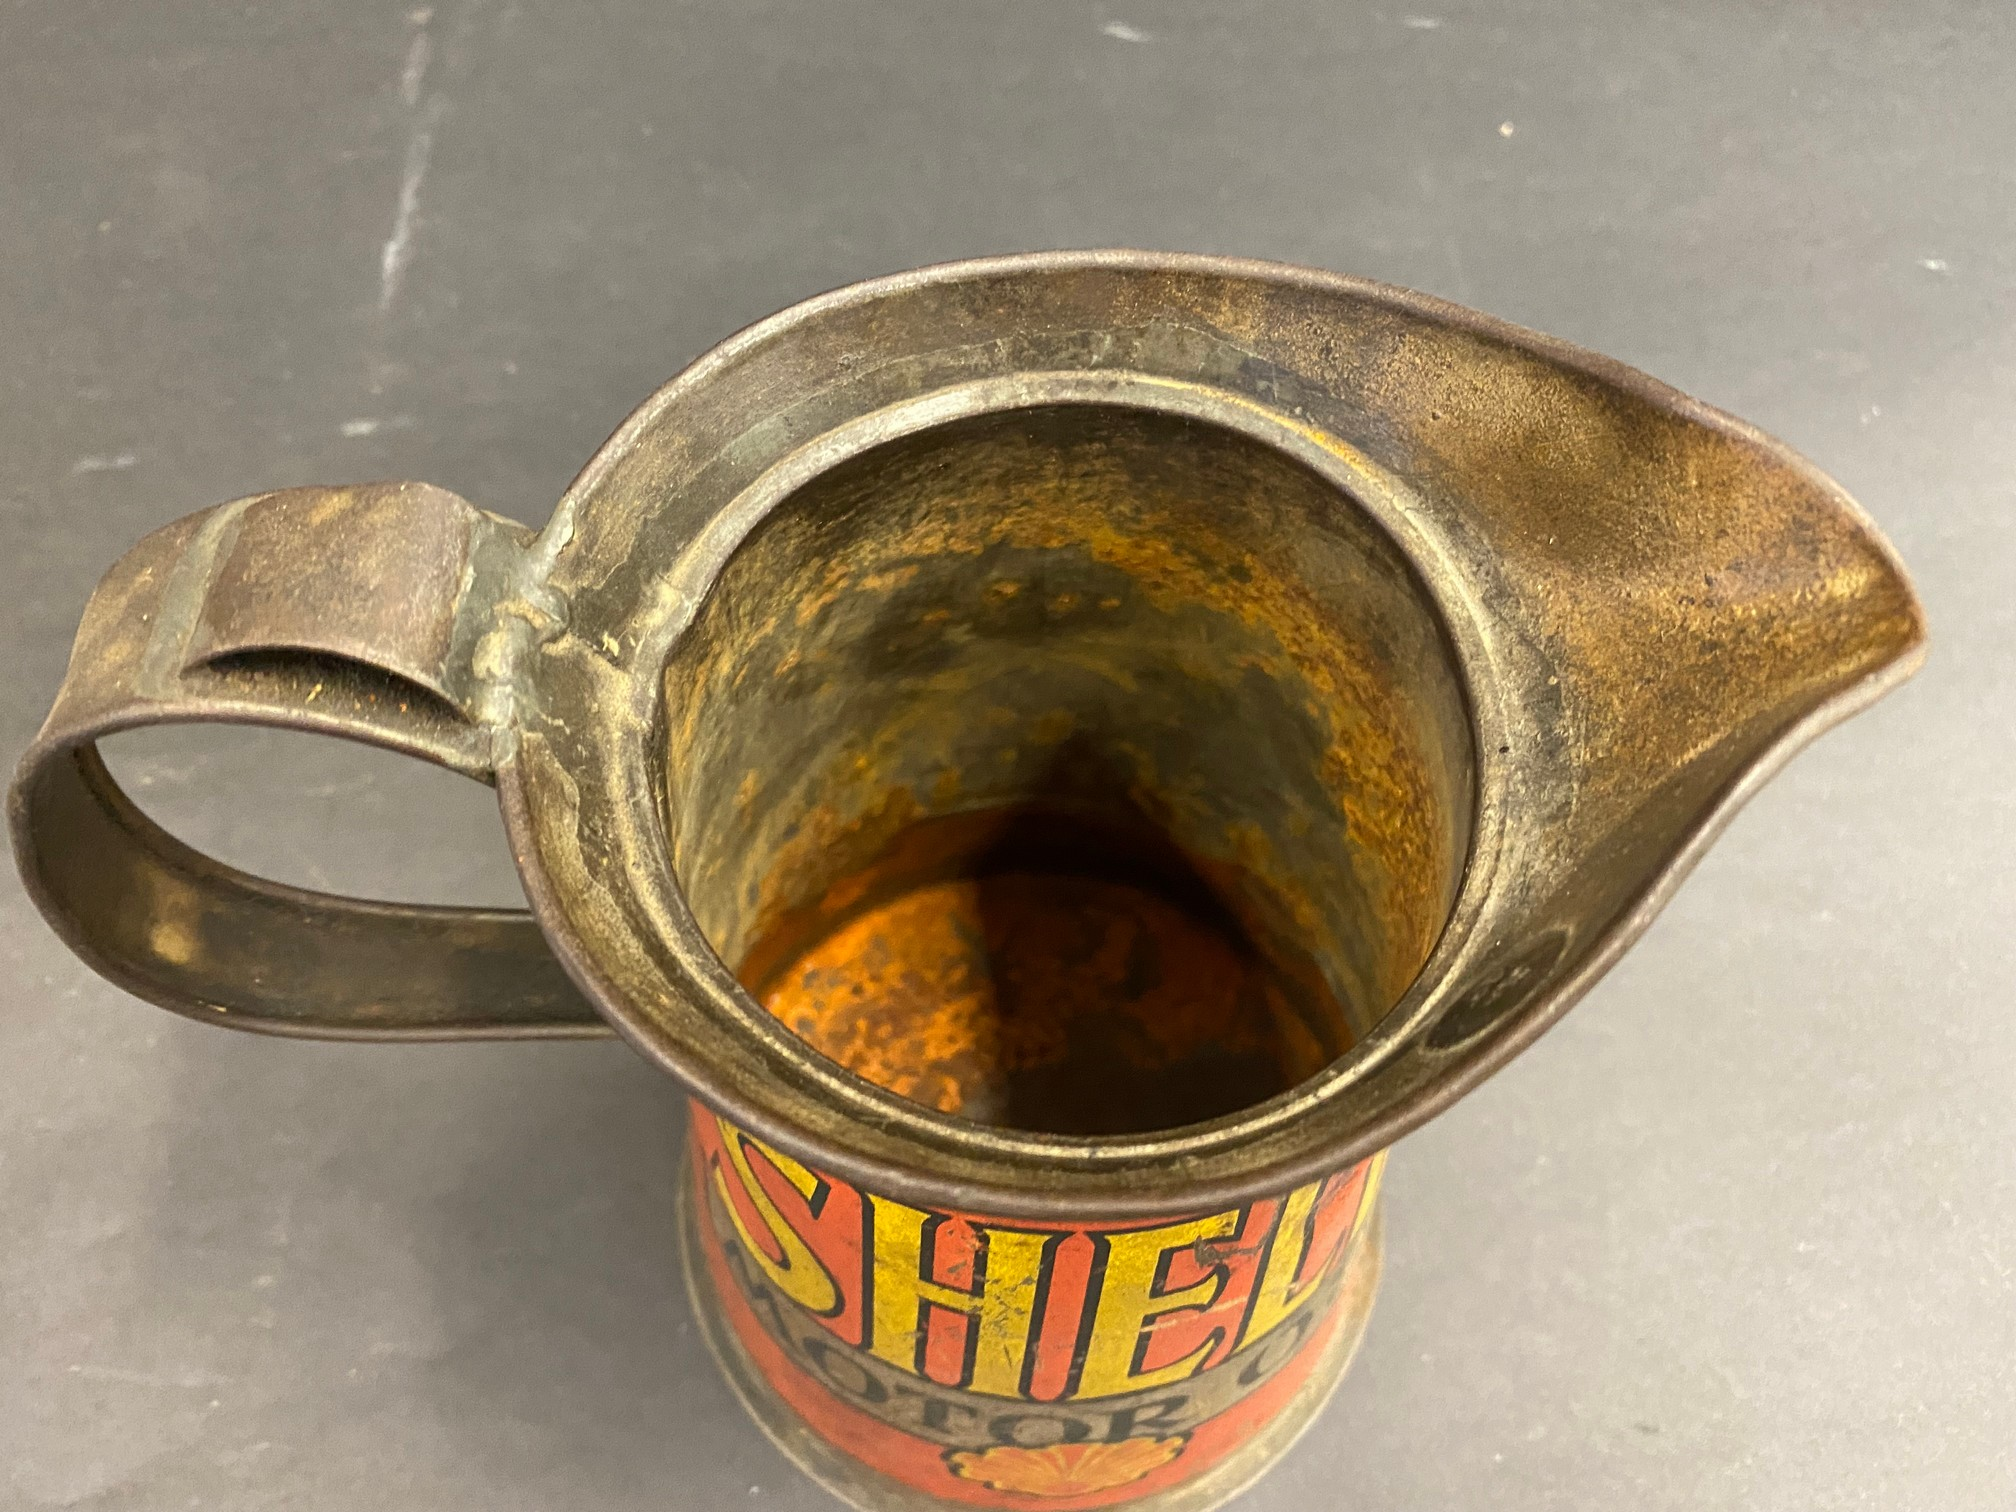 A Shell Motor Oil quart measure, early wide neck version, dated 1929. - Image 4 of 5